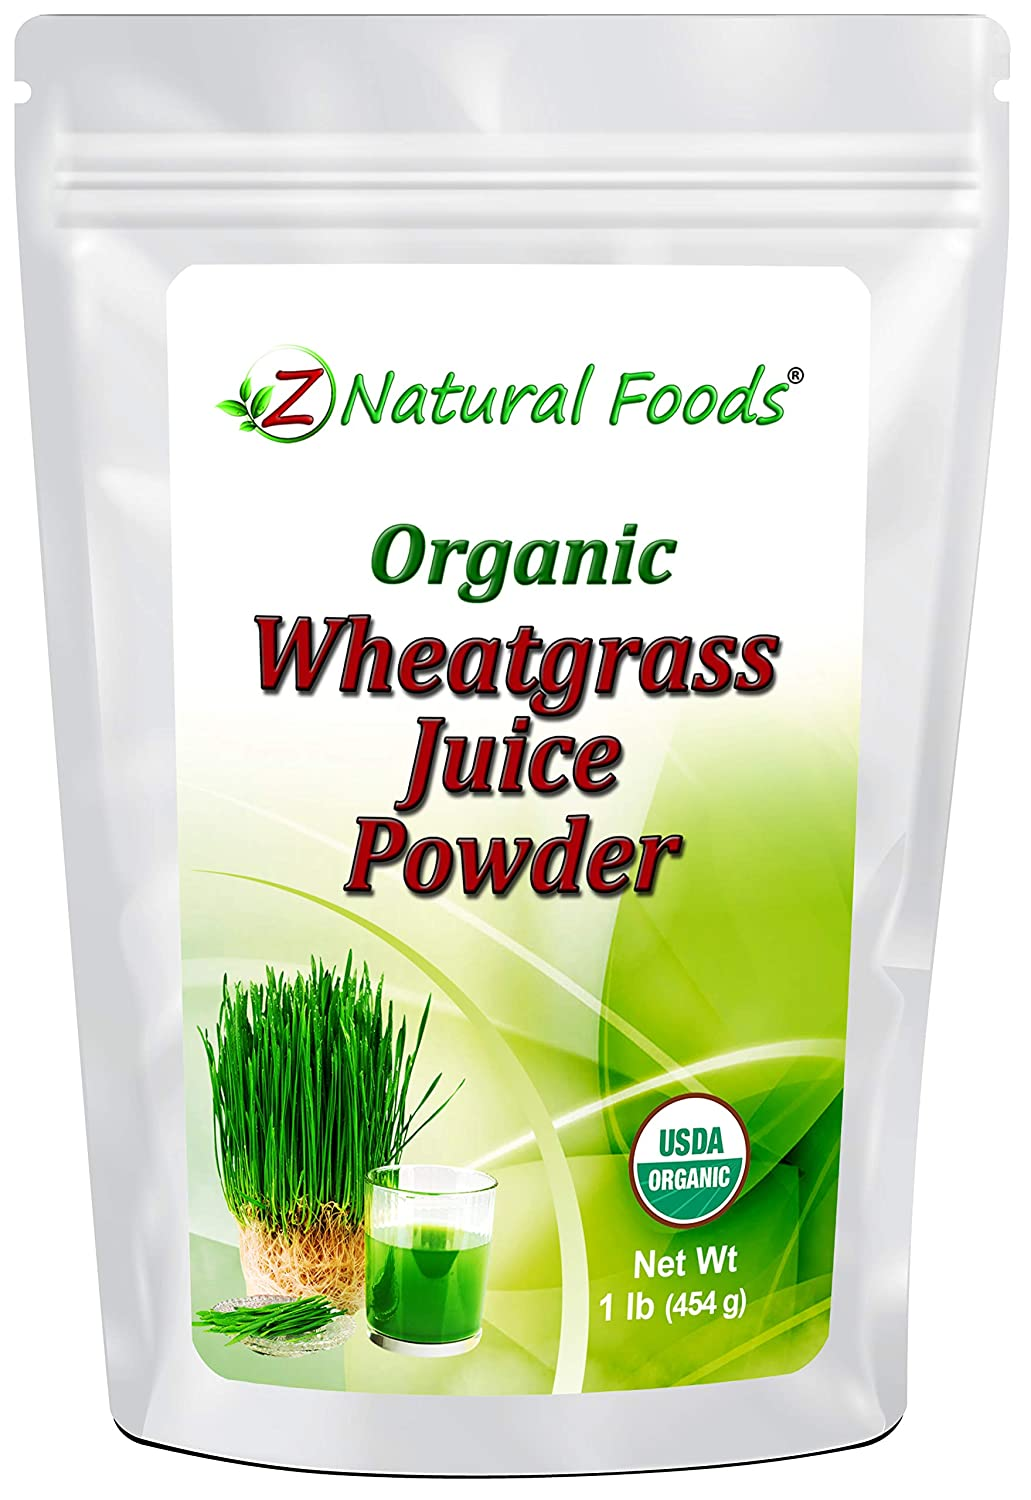 Organic Wheatgrass Juice Powder - Ultra Concentrated Green Nutrition - Incredible Superfood for Shots, Smoothies, Shakes, Recipes - Boost Energy & Vitality - Raw, Non GMO, Vegan, Kosher - 1 lb